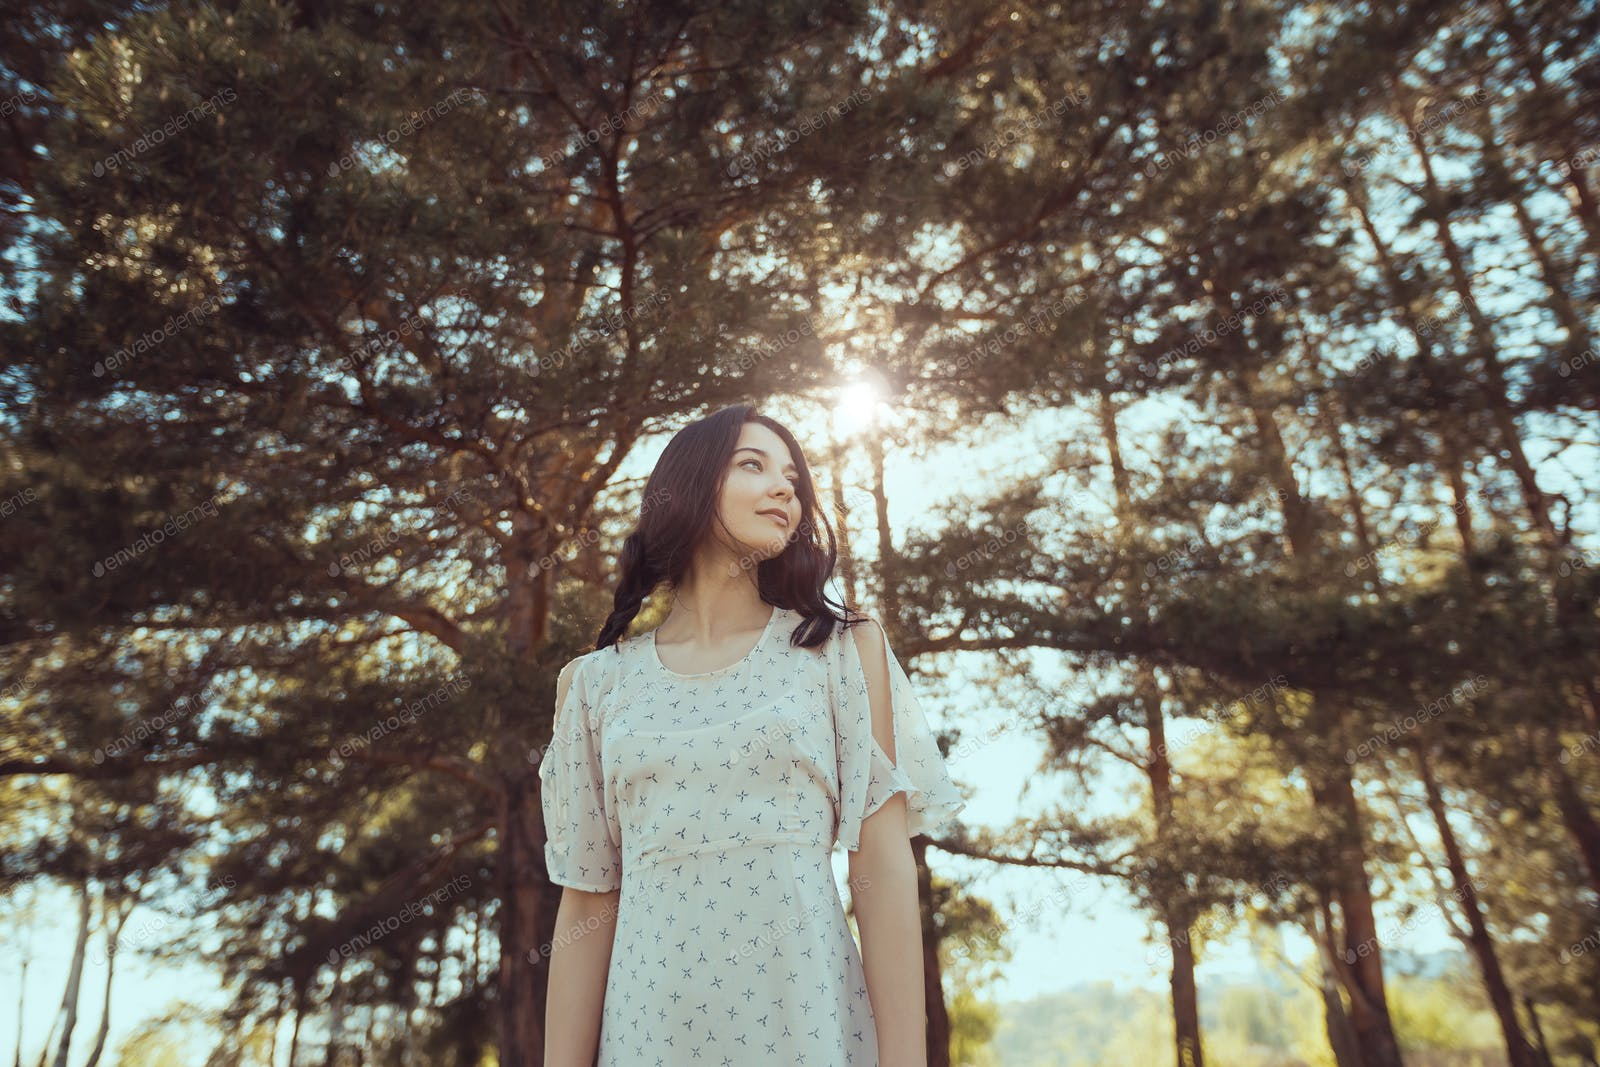 Happy Woman In Forest Enjoying Nature Girl Standing Outdoors Photo By Artfotodima On Envato Elements